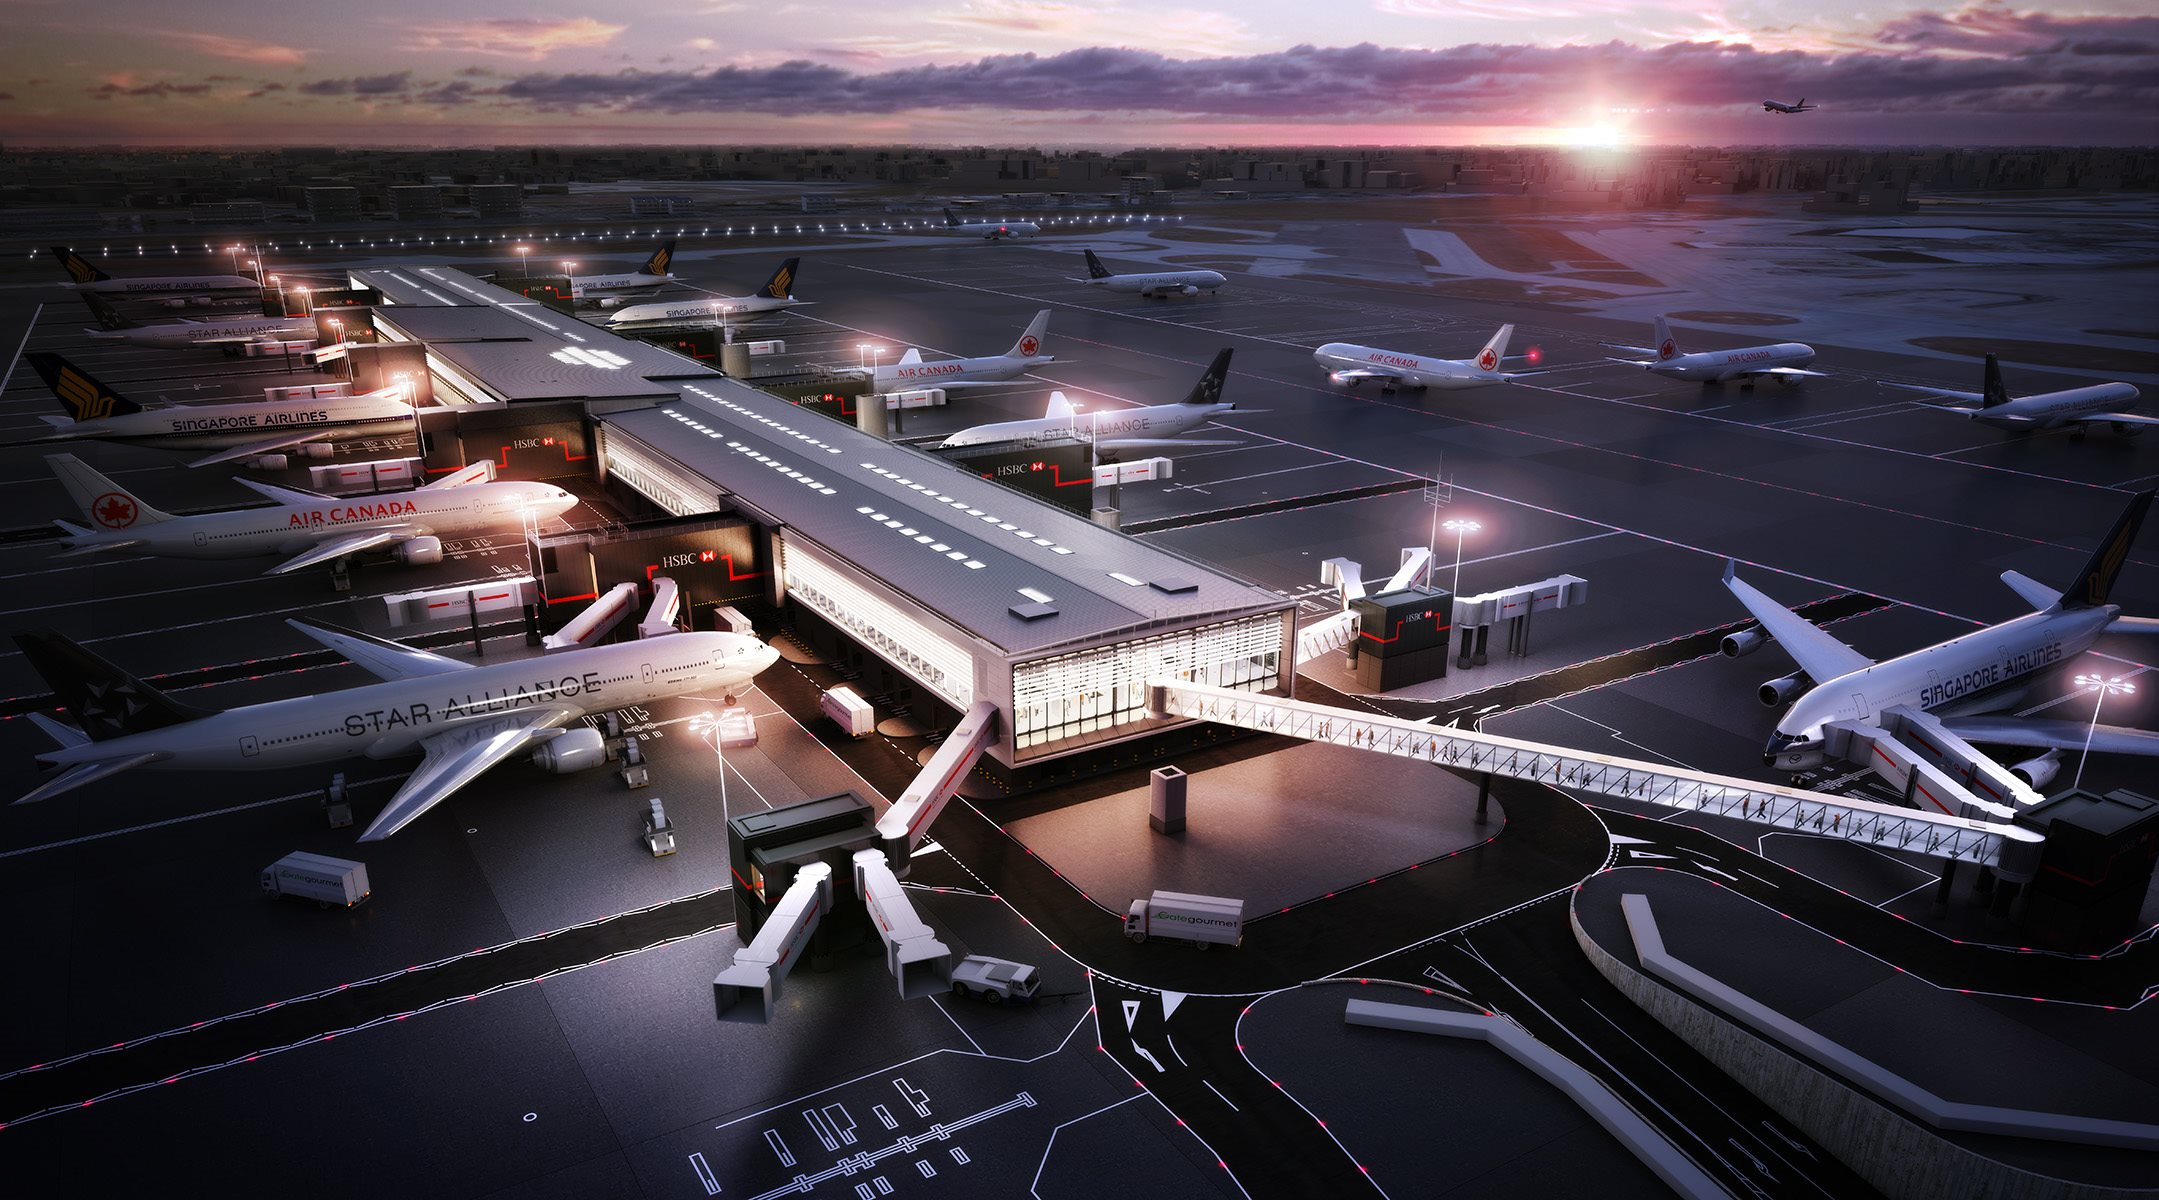 Visualisation of airport terminal